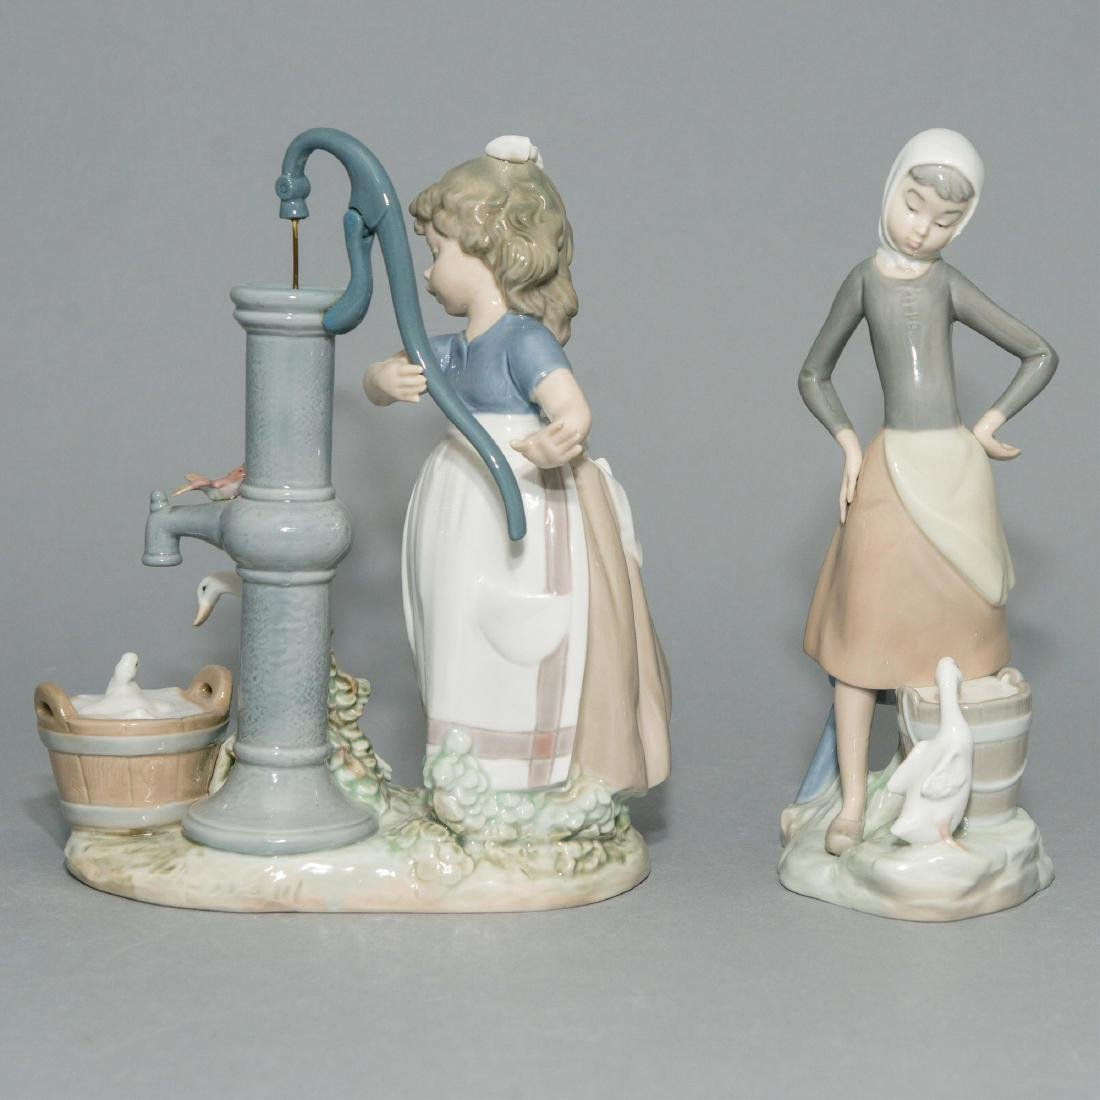 LLADRO GIRL WITH MILK PAIL AND SUMMER FIGURINES